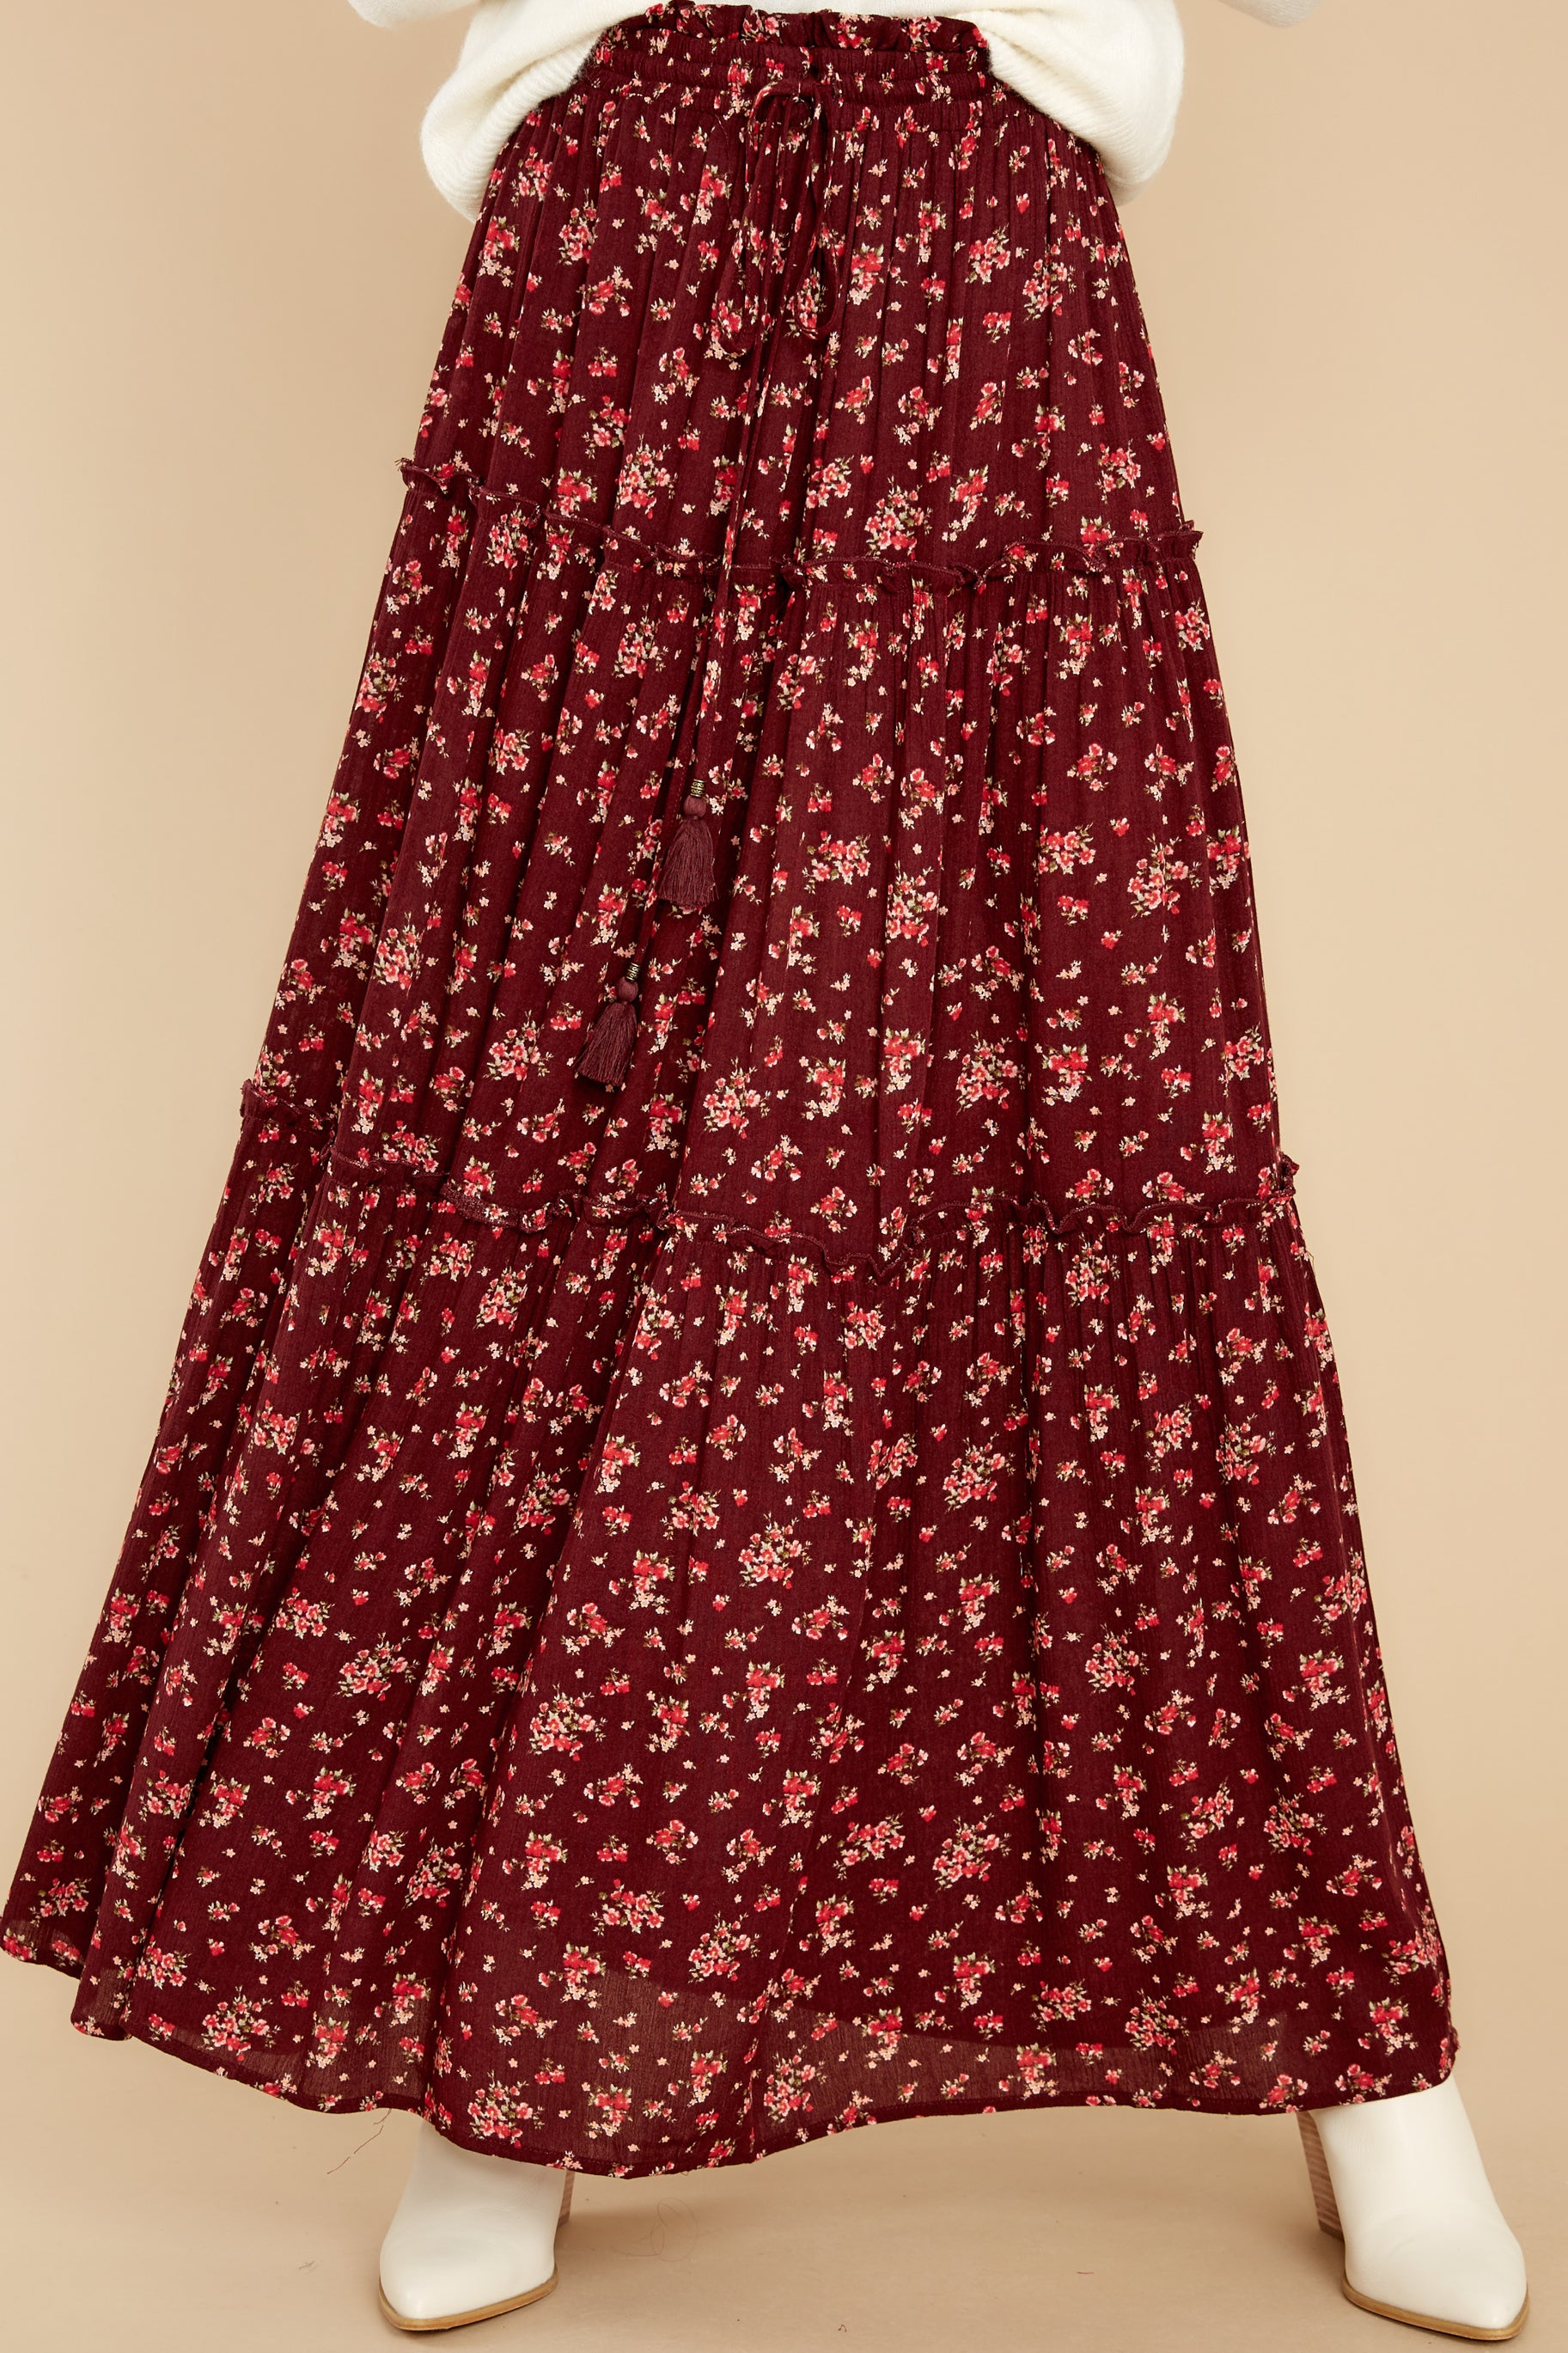 Cottagecore Clothing, Soft Aesthetic Flirty In The Fall Burgundy Floral Print Maxi Skirt $50.00 AT vintagedancer.com